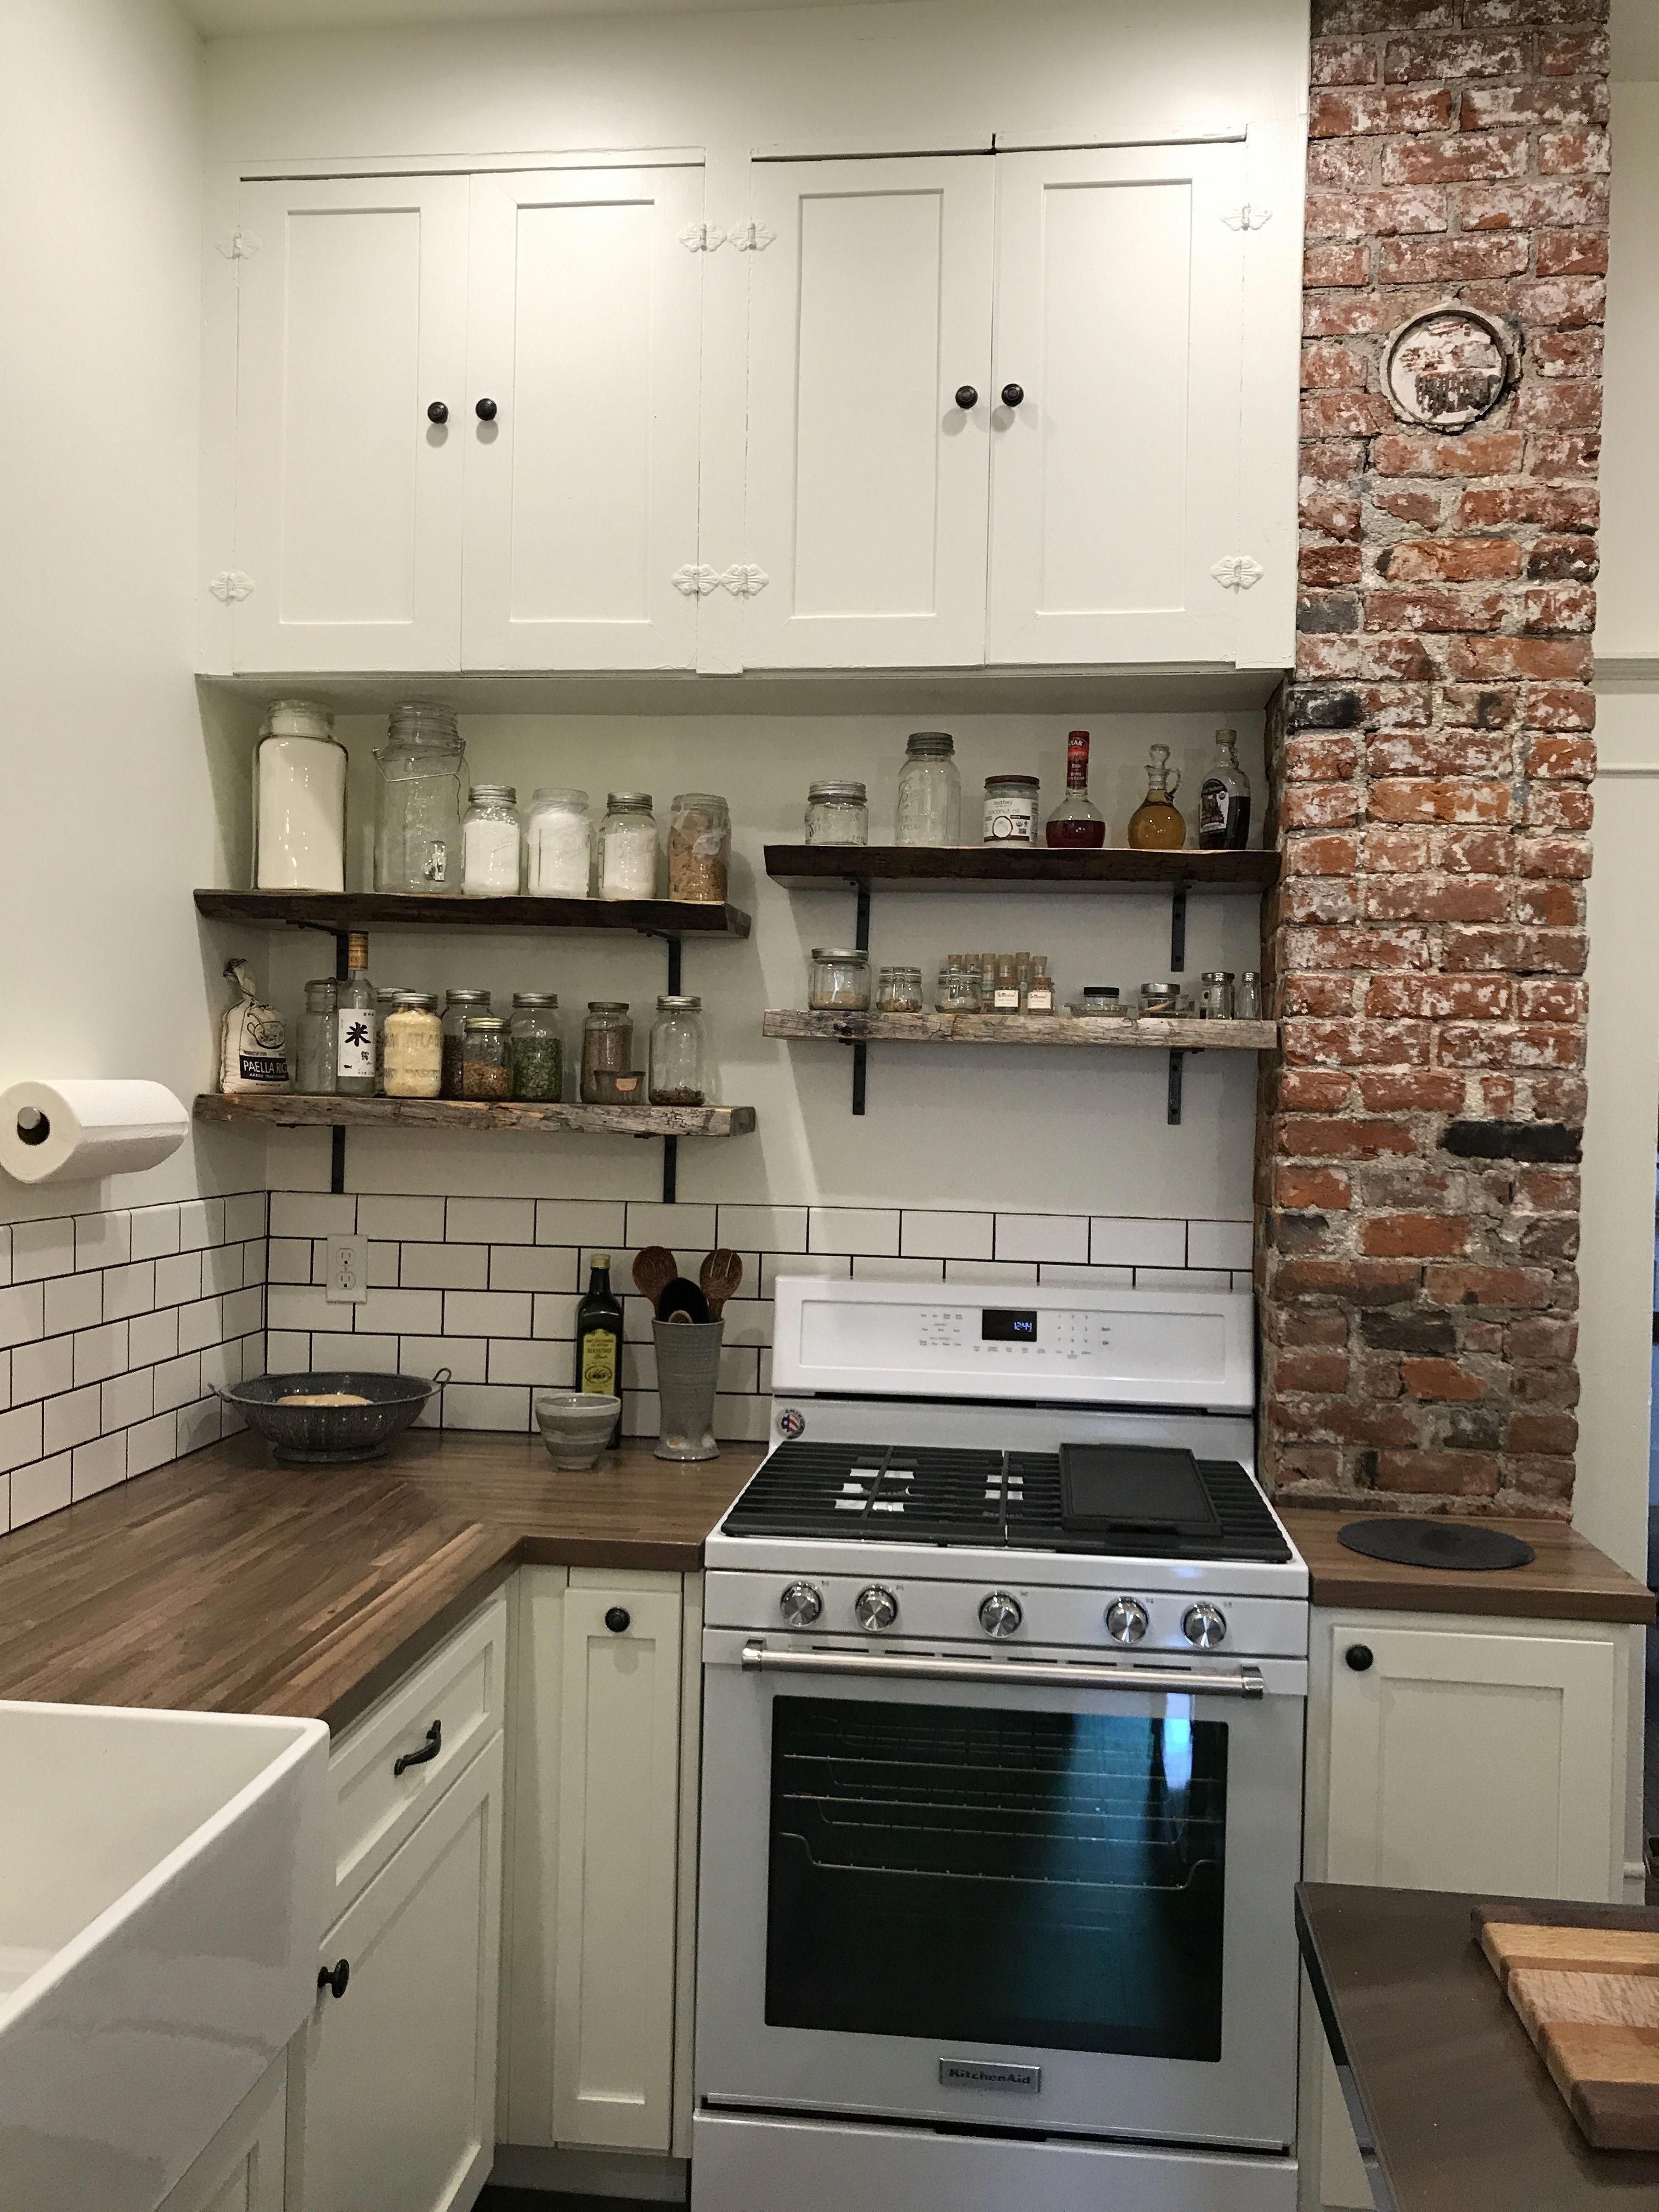 Old House Kitchen Remodel With Blue Pine Raw Edge Shelves Exposed Brick Chimney And Butcher Block Kitchen Remodel Small Kitchen Design Exposed Brick Kitchen